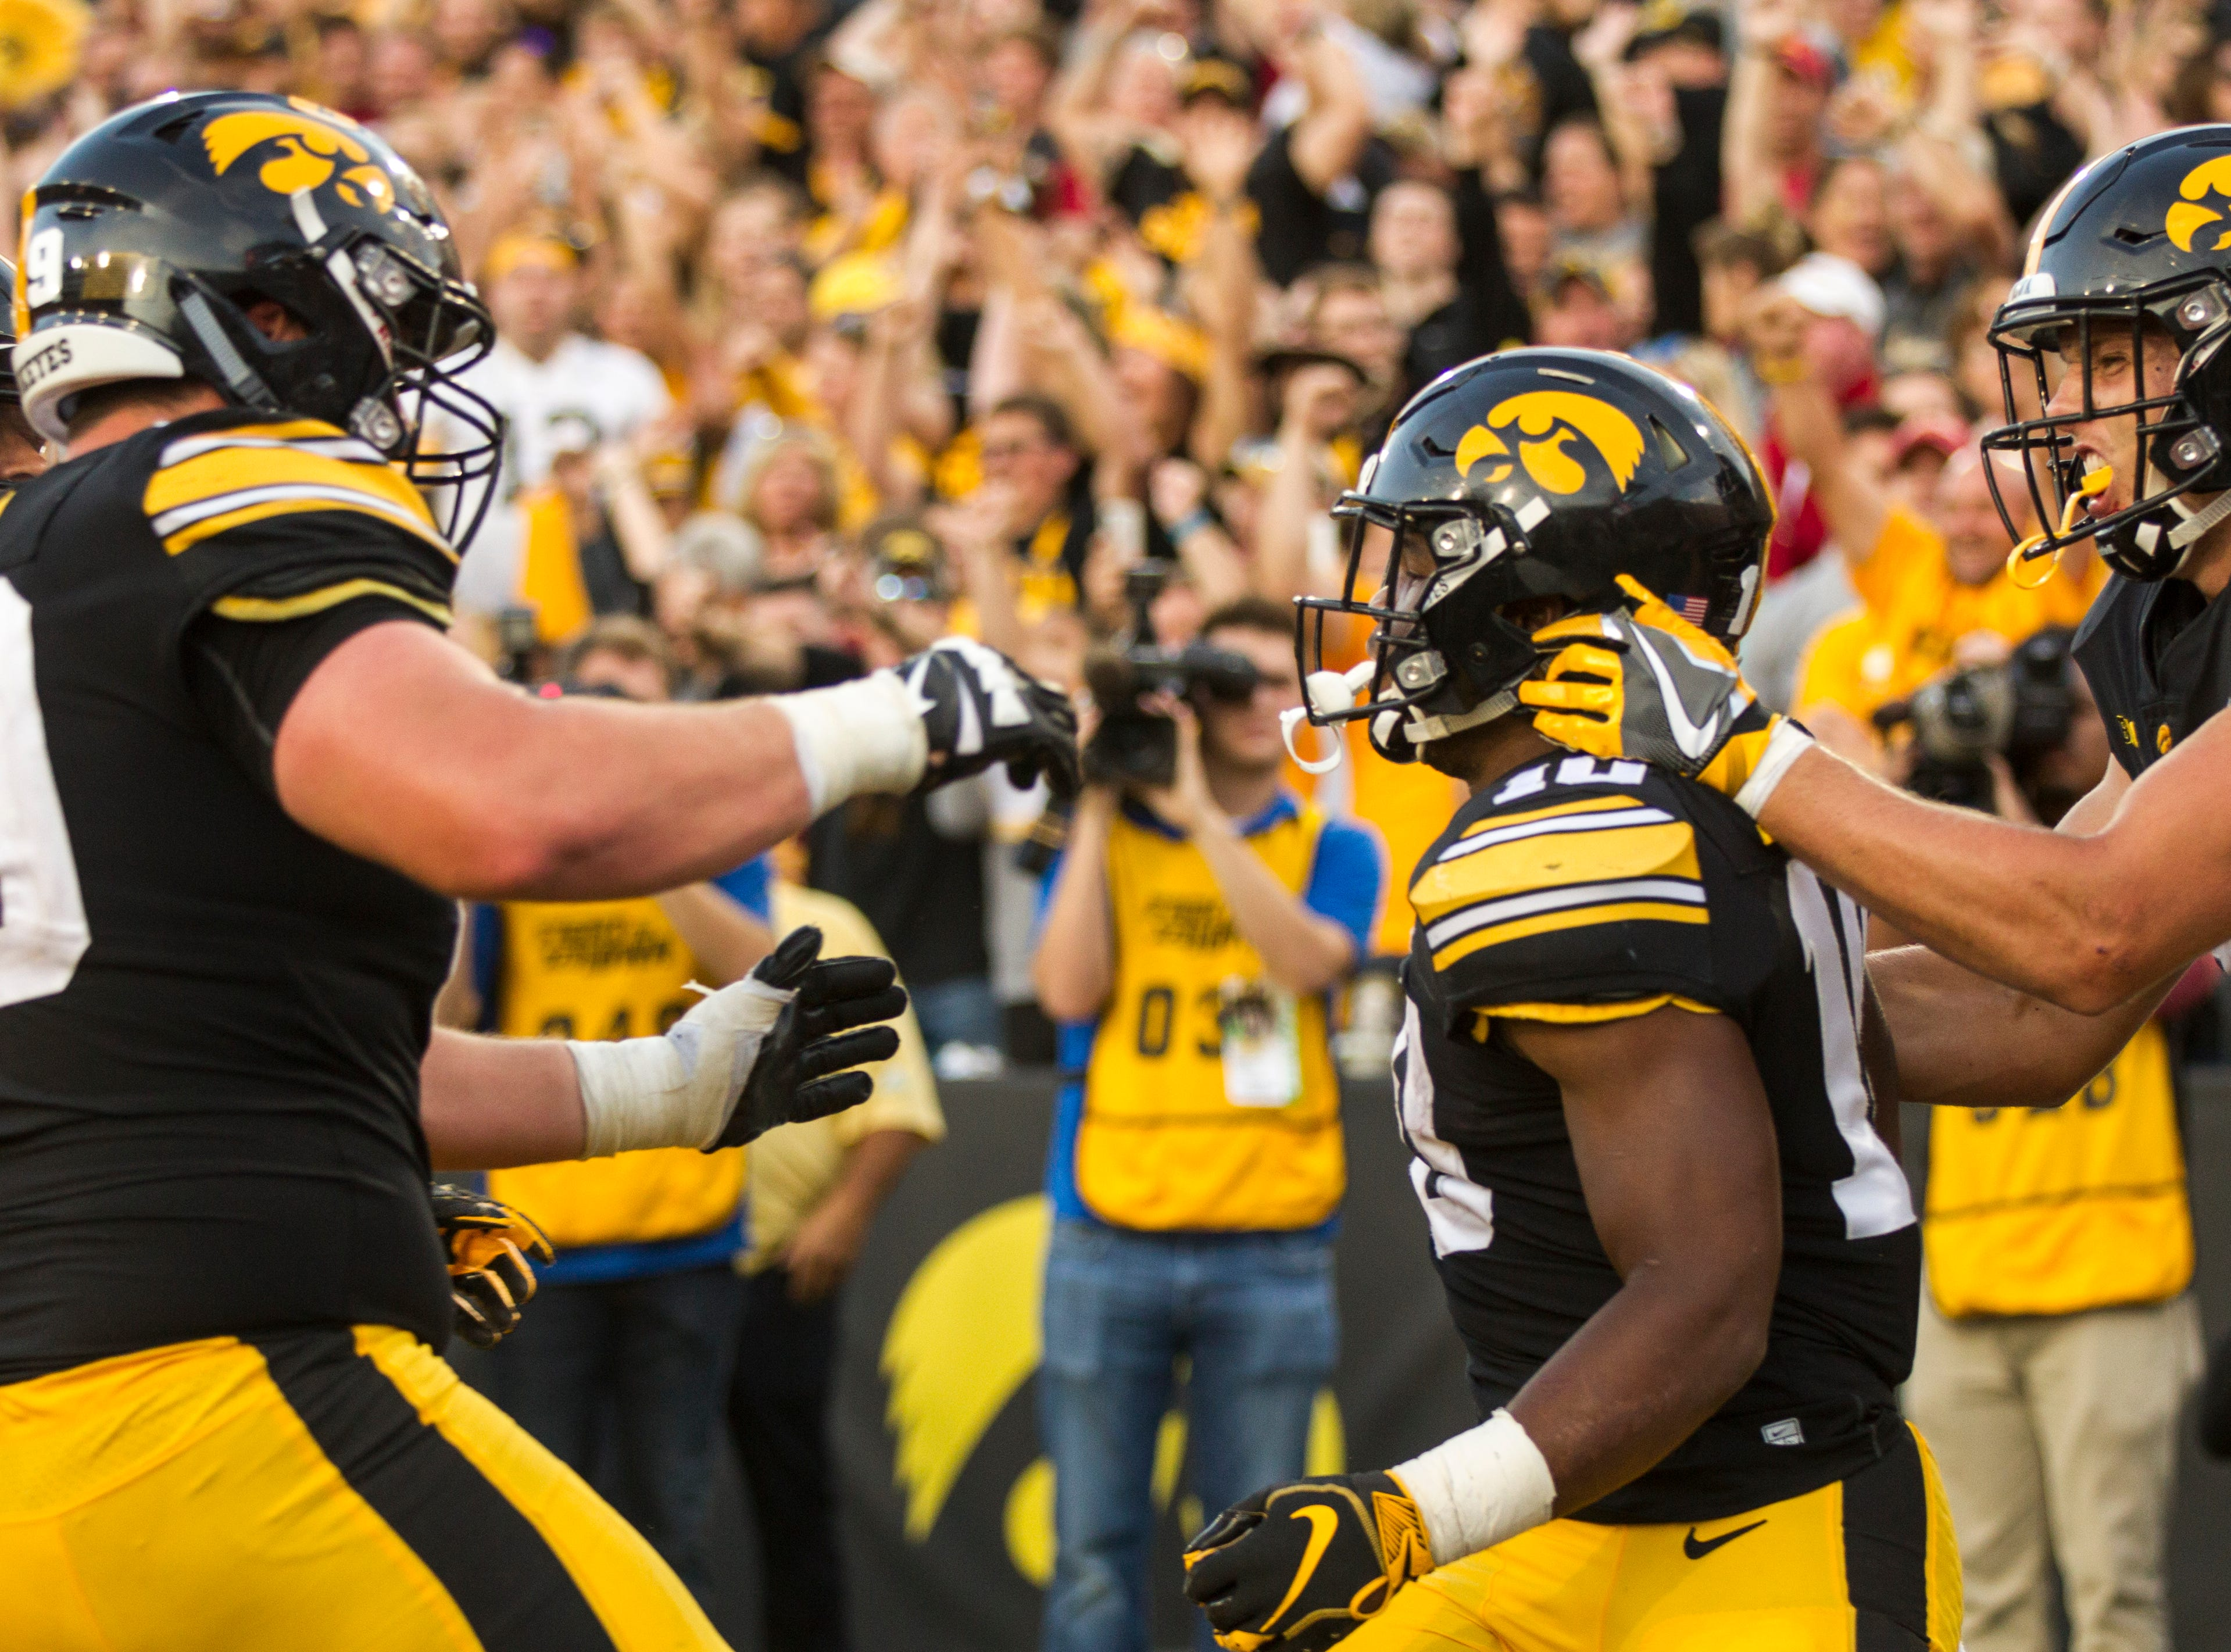 Iowa running back Mekhi Sargent (10) celebrates after scoring a touchdown during the Cy-Hawk NCAA football game on Saturday, Sept. 8, 2018, at Kinnick Stadium in Iowa City.